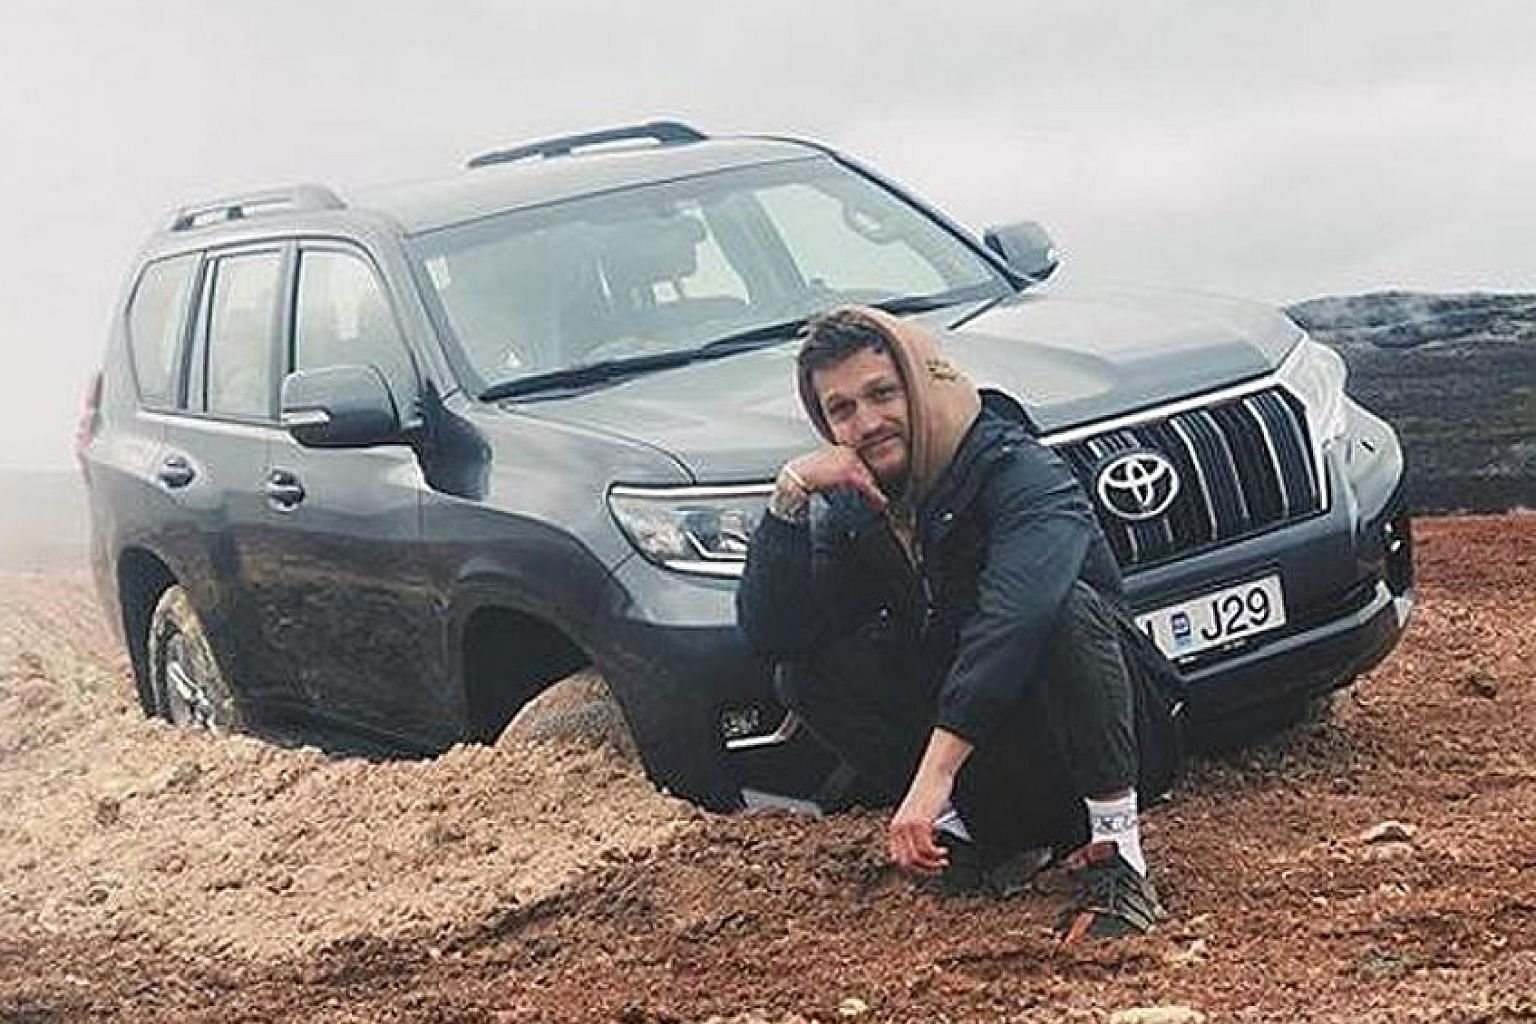 Mr Alexander Tikhomirov, an Instagram influencer from Russia, received a flood of negative comments after he posted this photo of himself with the vehicle he was in, stuck in soft clay on the side of the road in Iceland. Off-road driving is illegal t